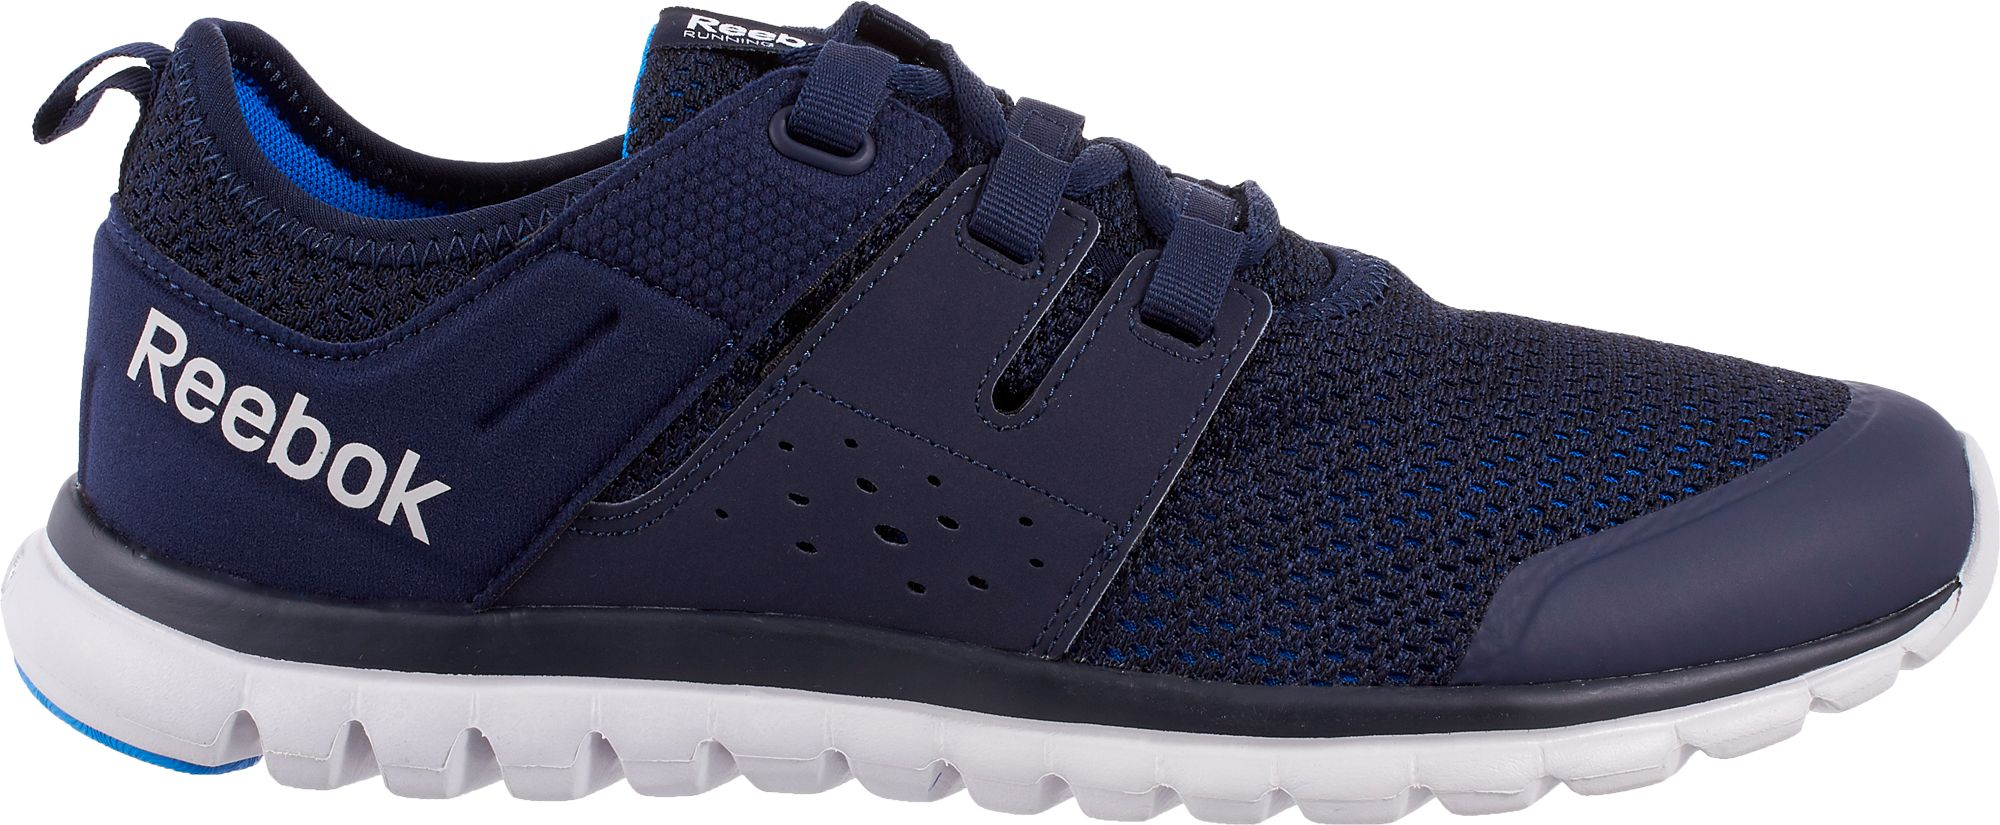 Reebok Leather Shoes Price In India